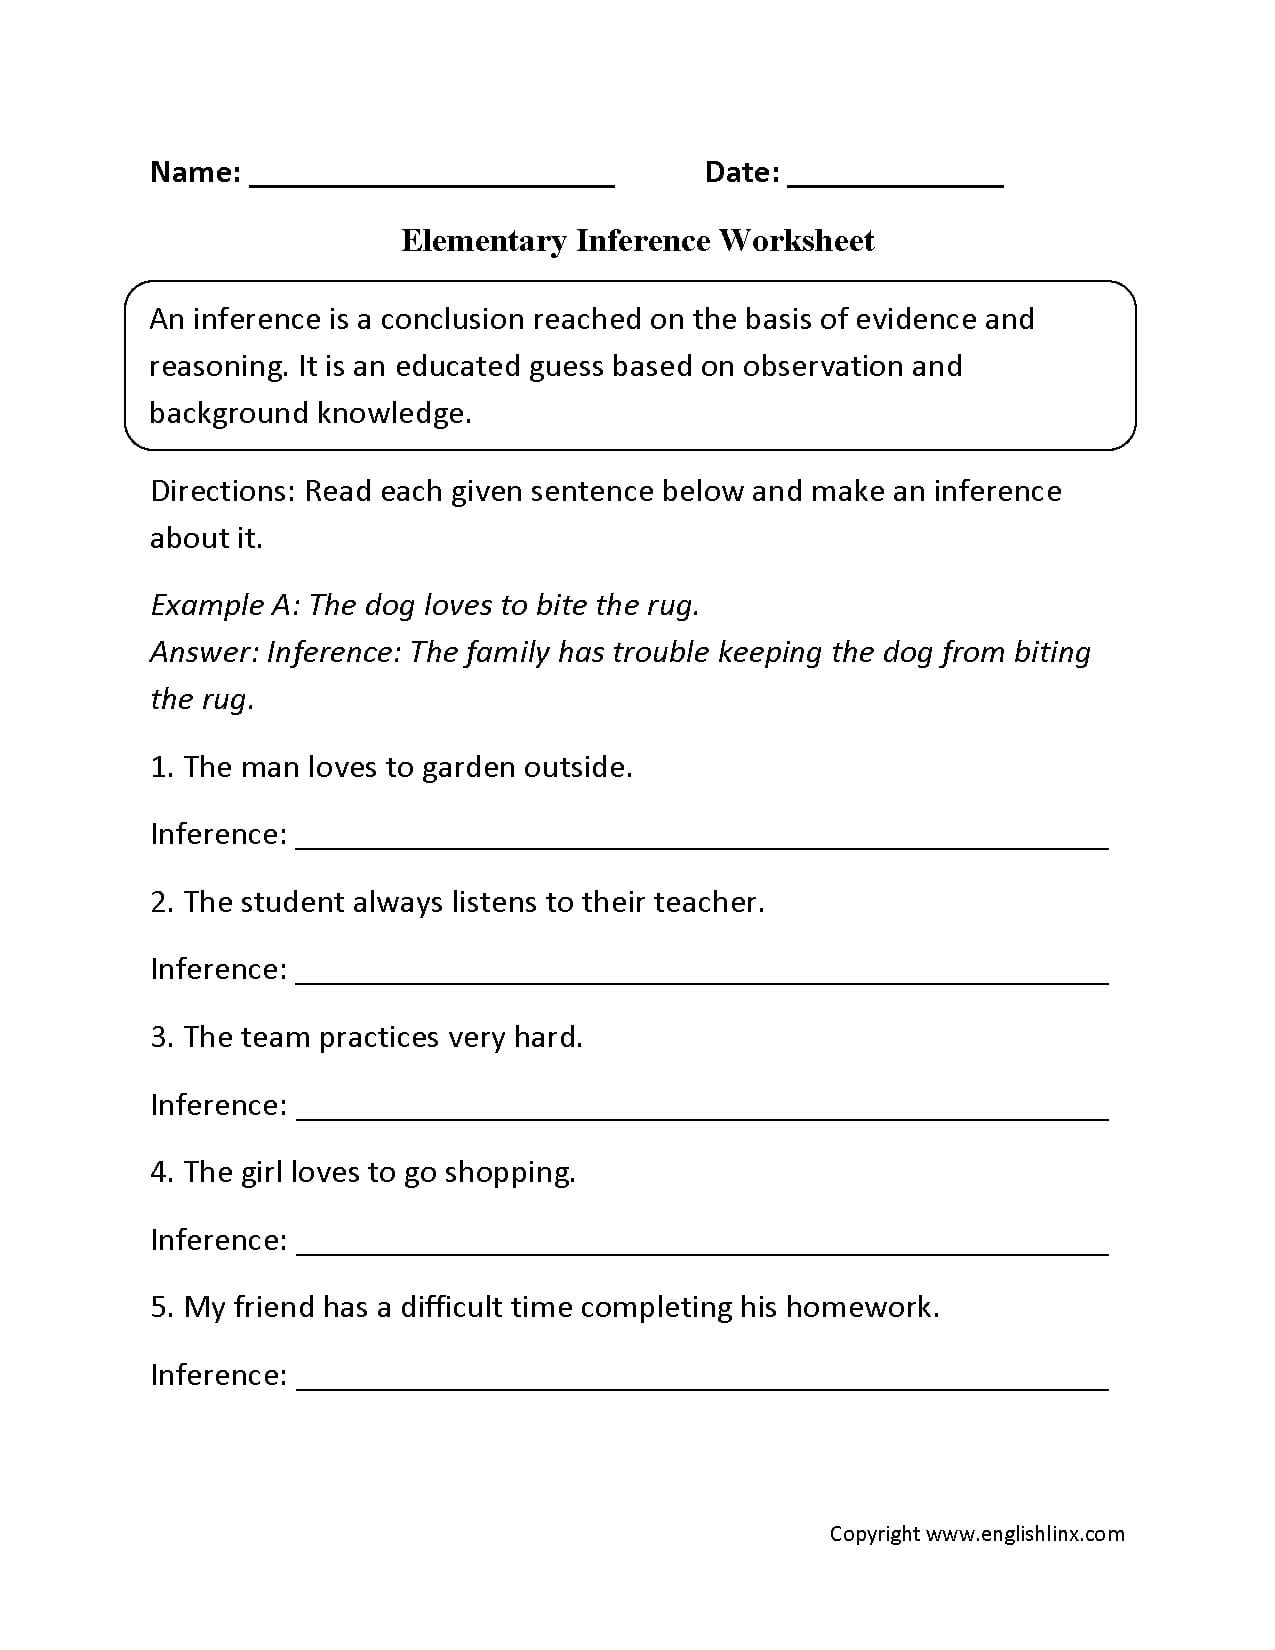 Reading Worksheets  Inference Worksheets Together With Inferences Worksheet 5